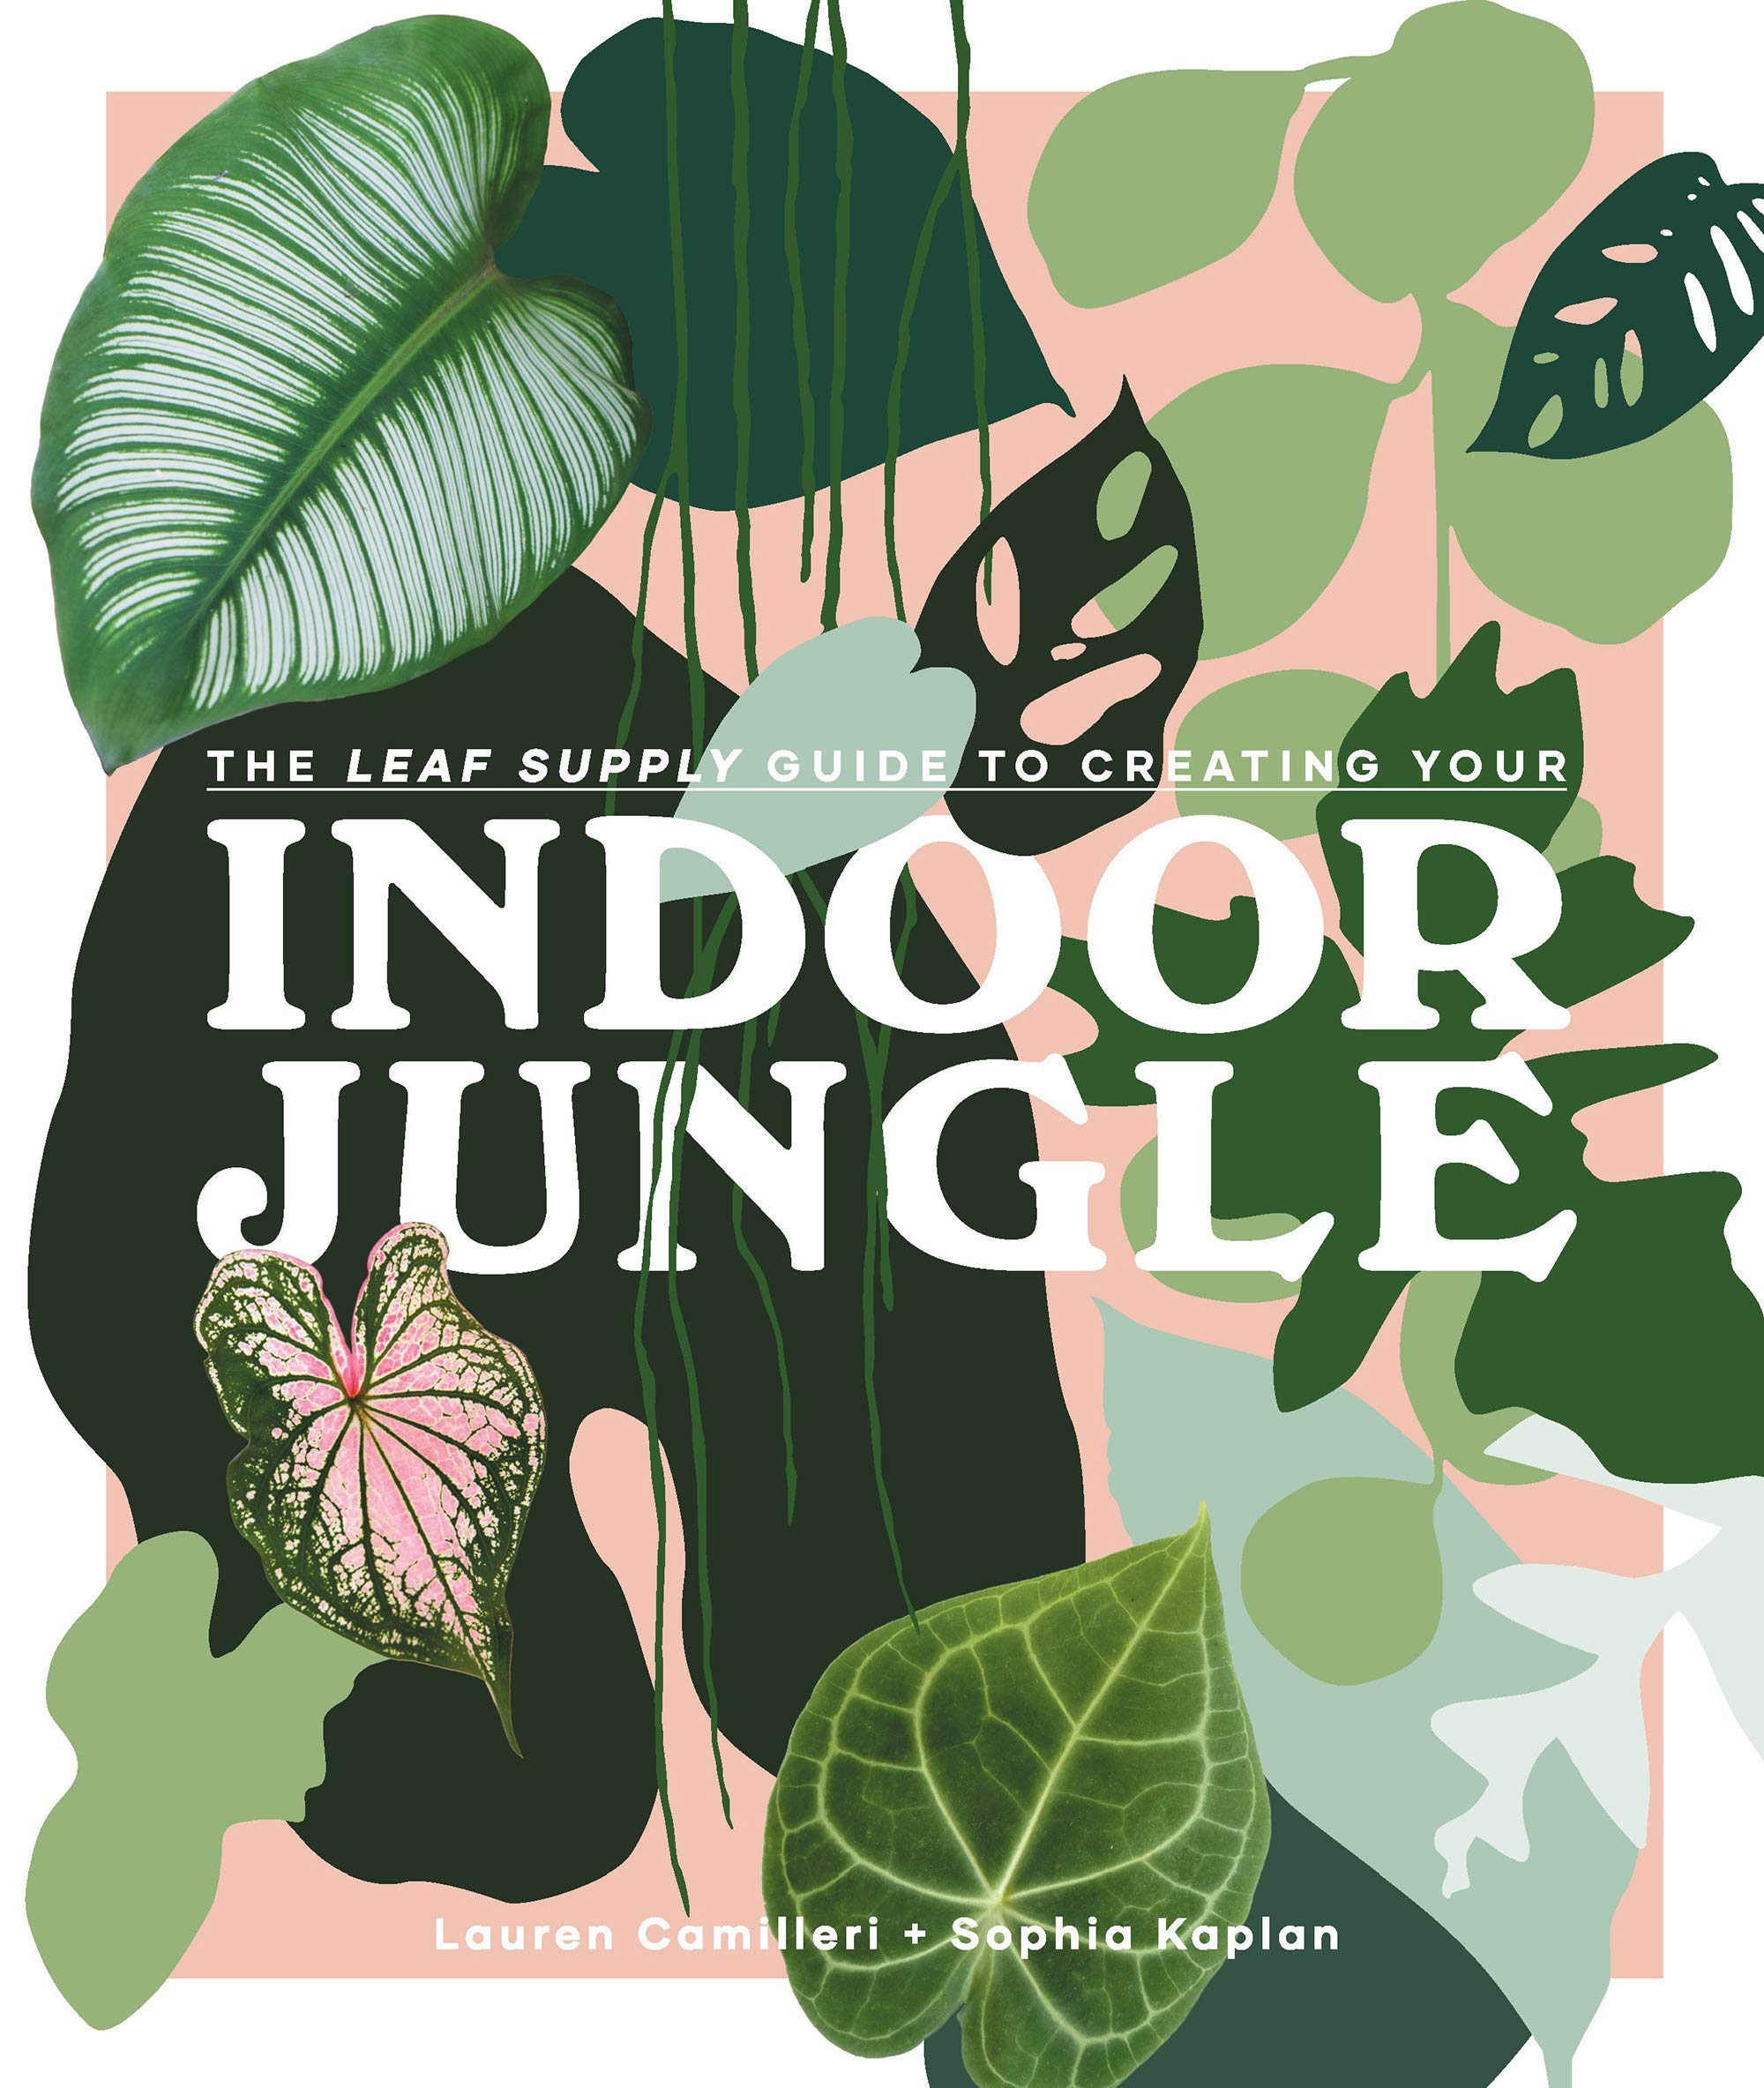 The Leaf Supply Guide To Creating Your Indoor Jungle  A Guide For Growing And Styling Foliage In Your Home